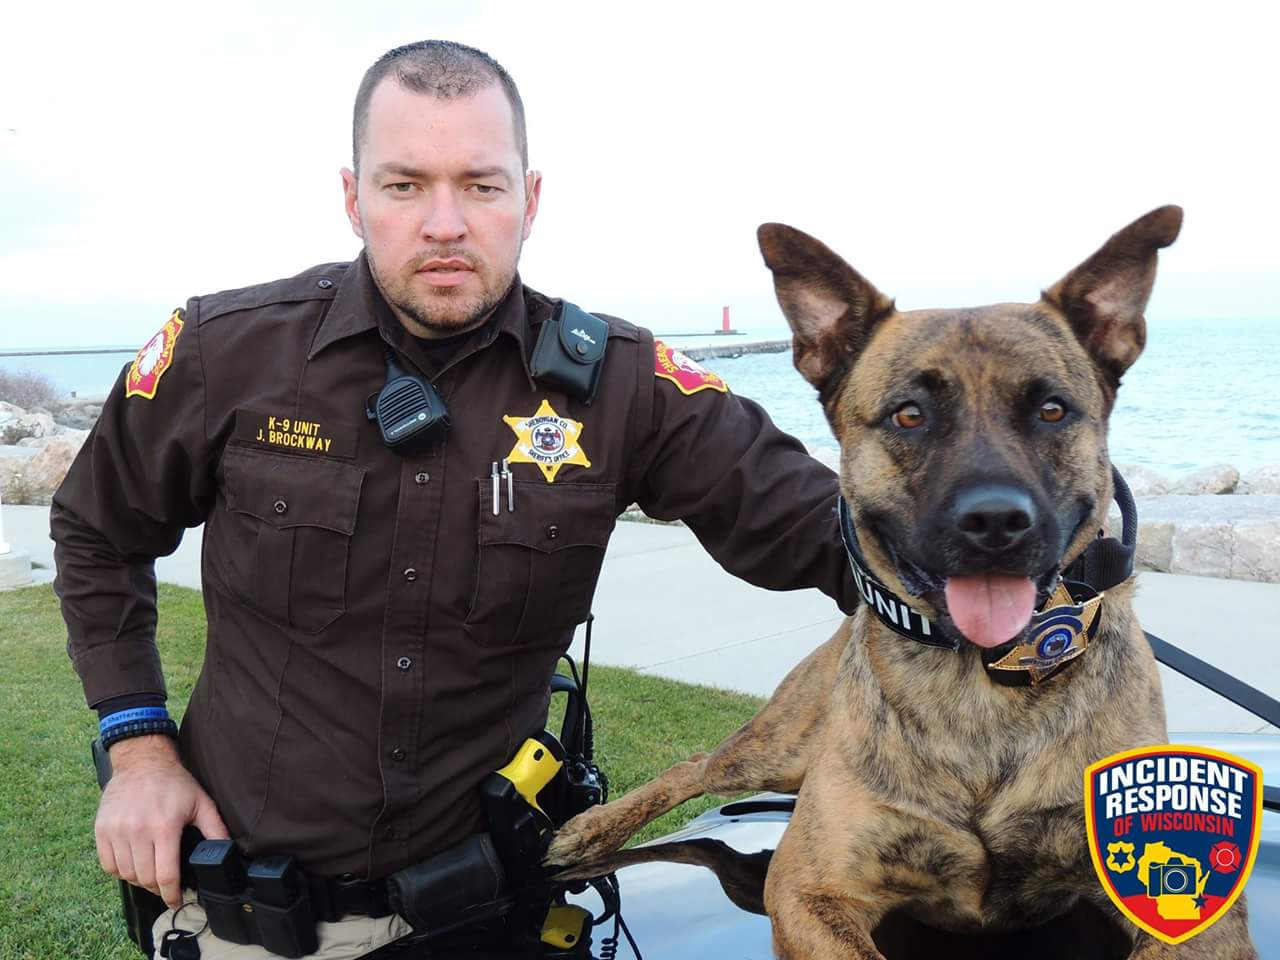 Deputy Brockway and K9 Mika